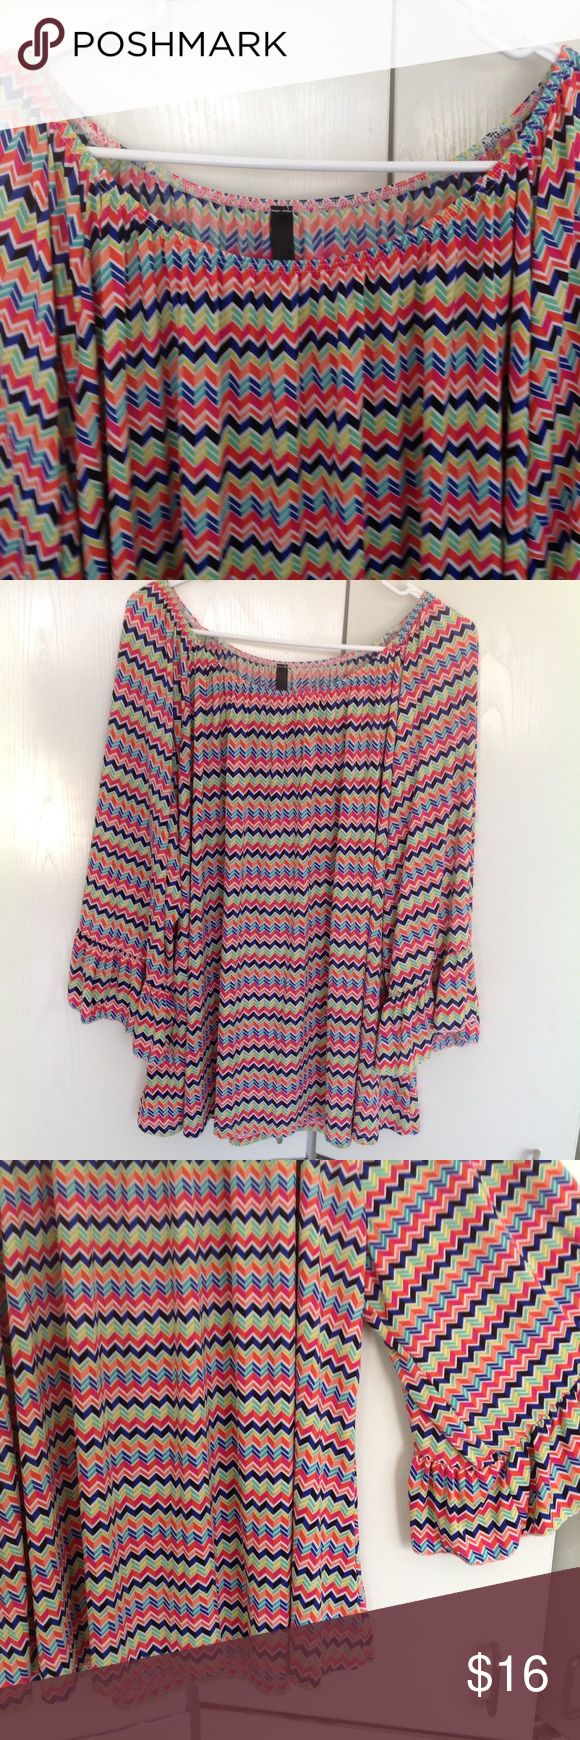 "Plus size colorful chevron top Reposh - I bought this beautiful top for vacation to wear with white pants but it was just not my size.  It is SO gorgeous !!! I wish it fit!!! Measures 29"" across chest and 28"" in length. voll Tops Blouses"